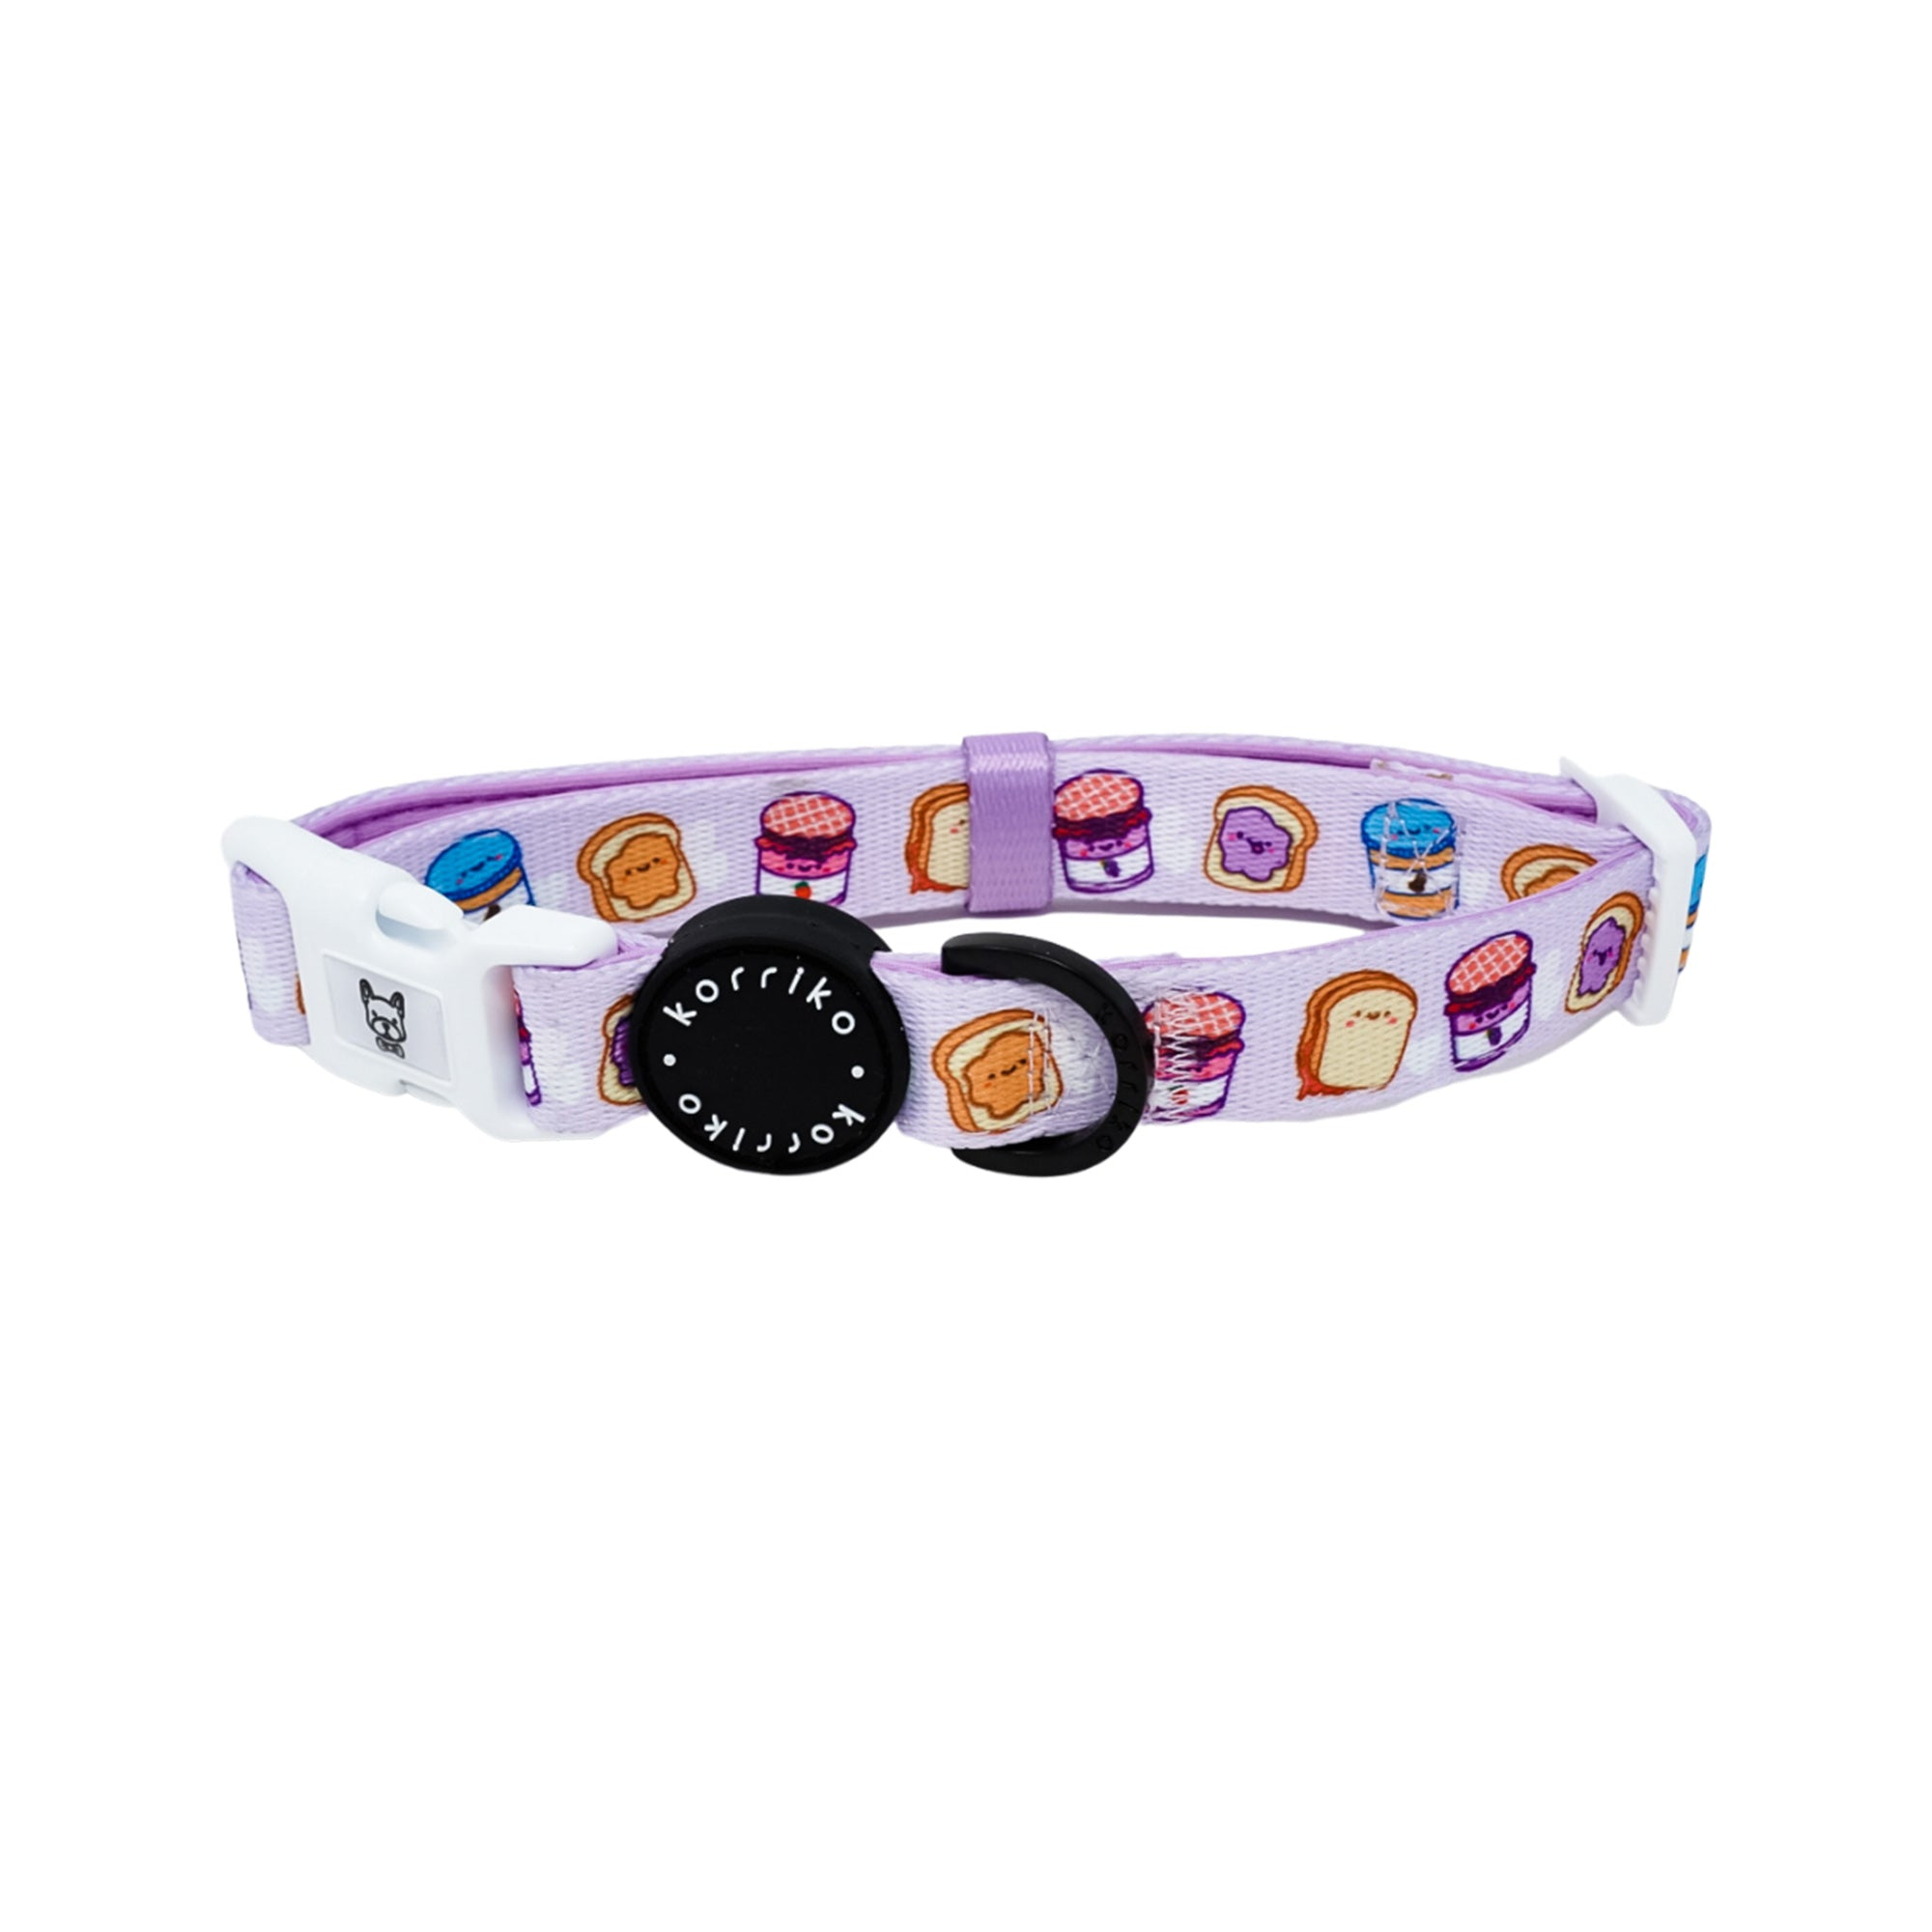 Dog Collar - Peanut Butter Jelly